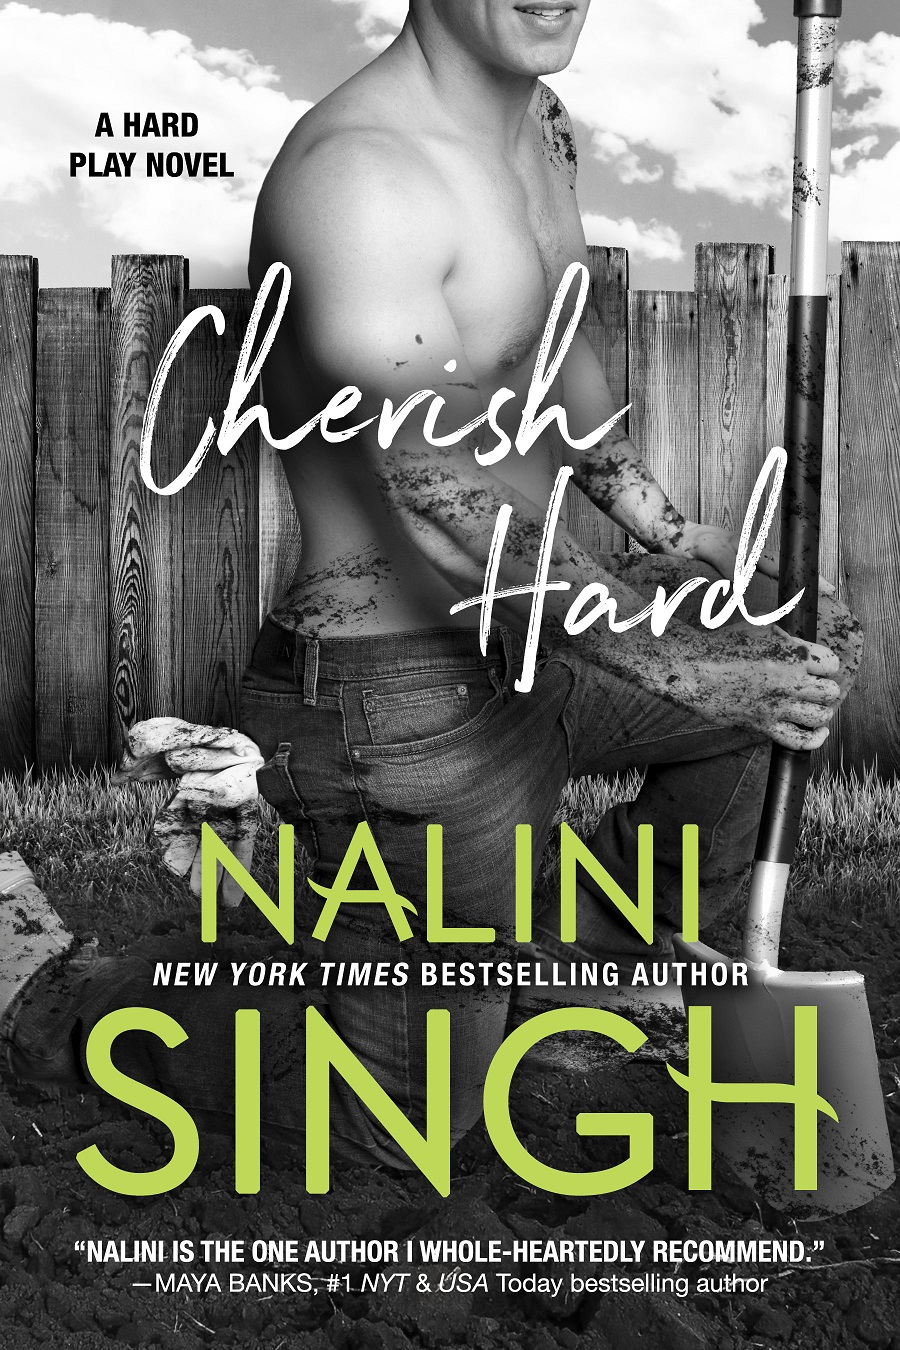 SPOTLIGHT: 'Cherish Hard' by Nalini Singh